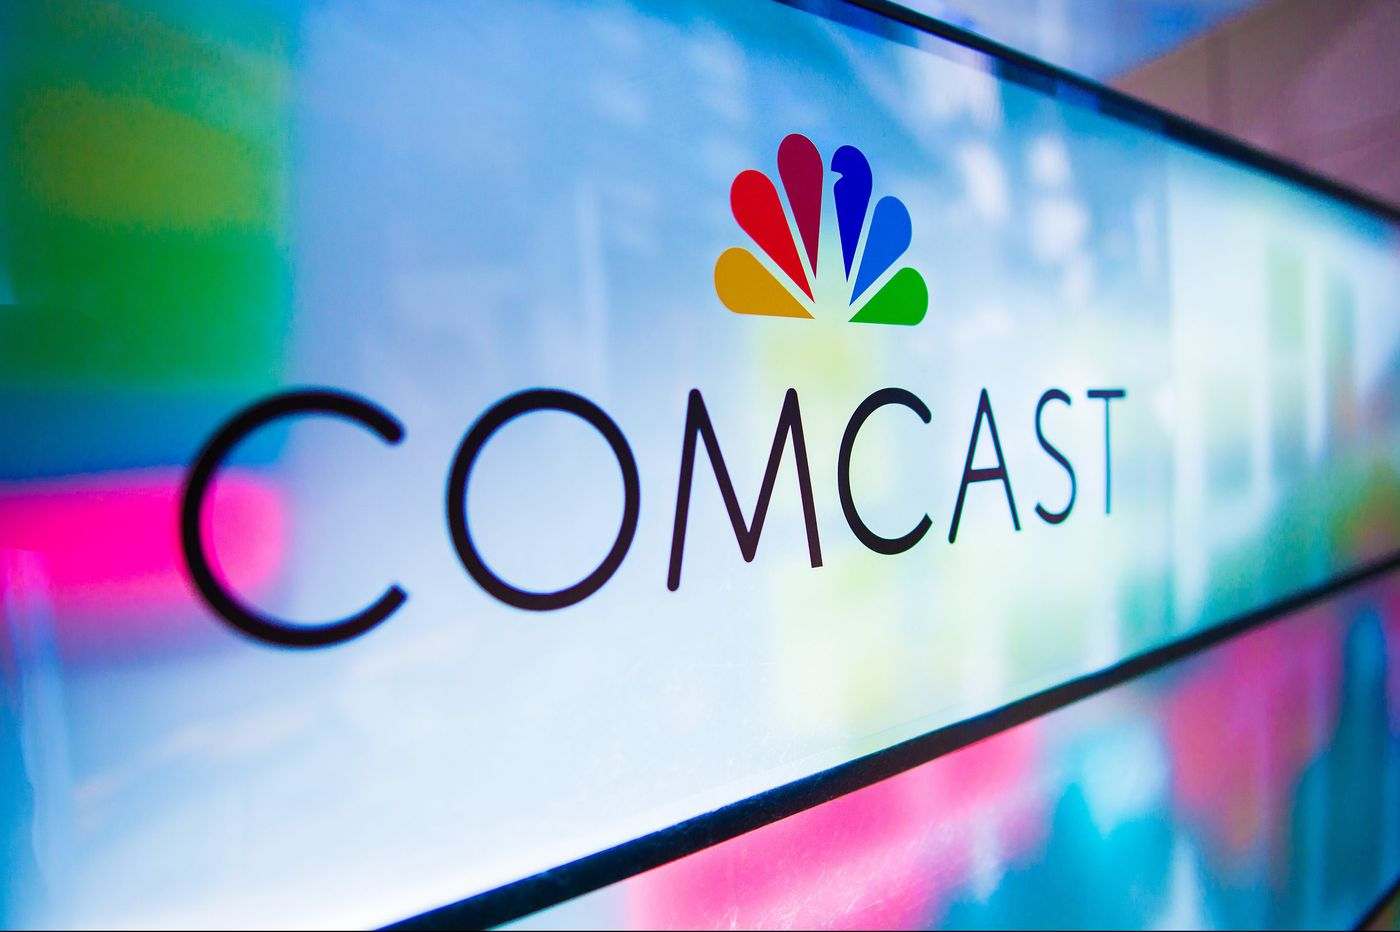 Comcast bills will rise 3 3 percent, but check your fees